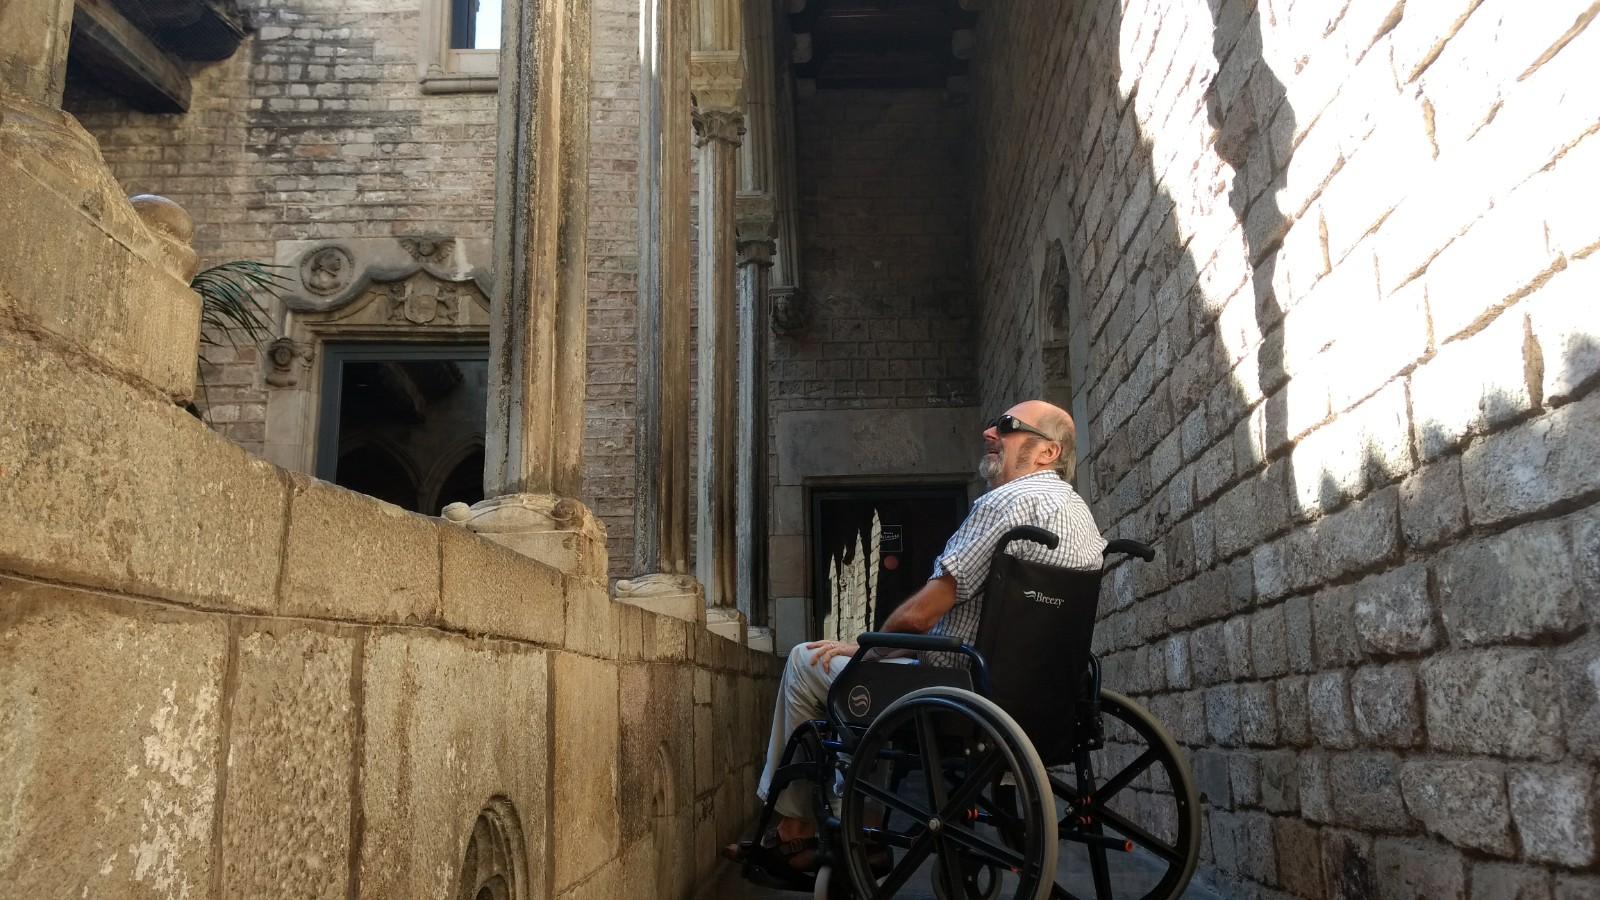 Travel to europe in a wheelchair